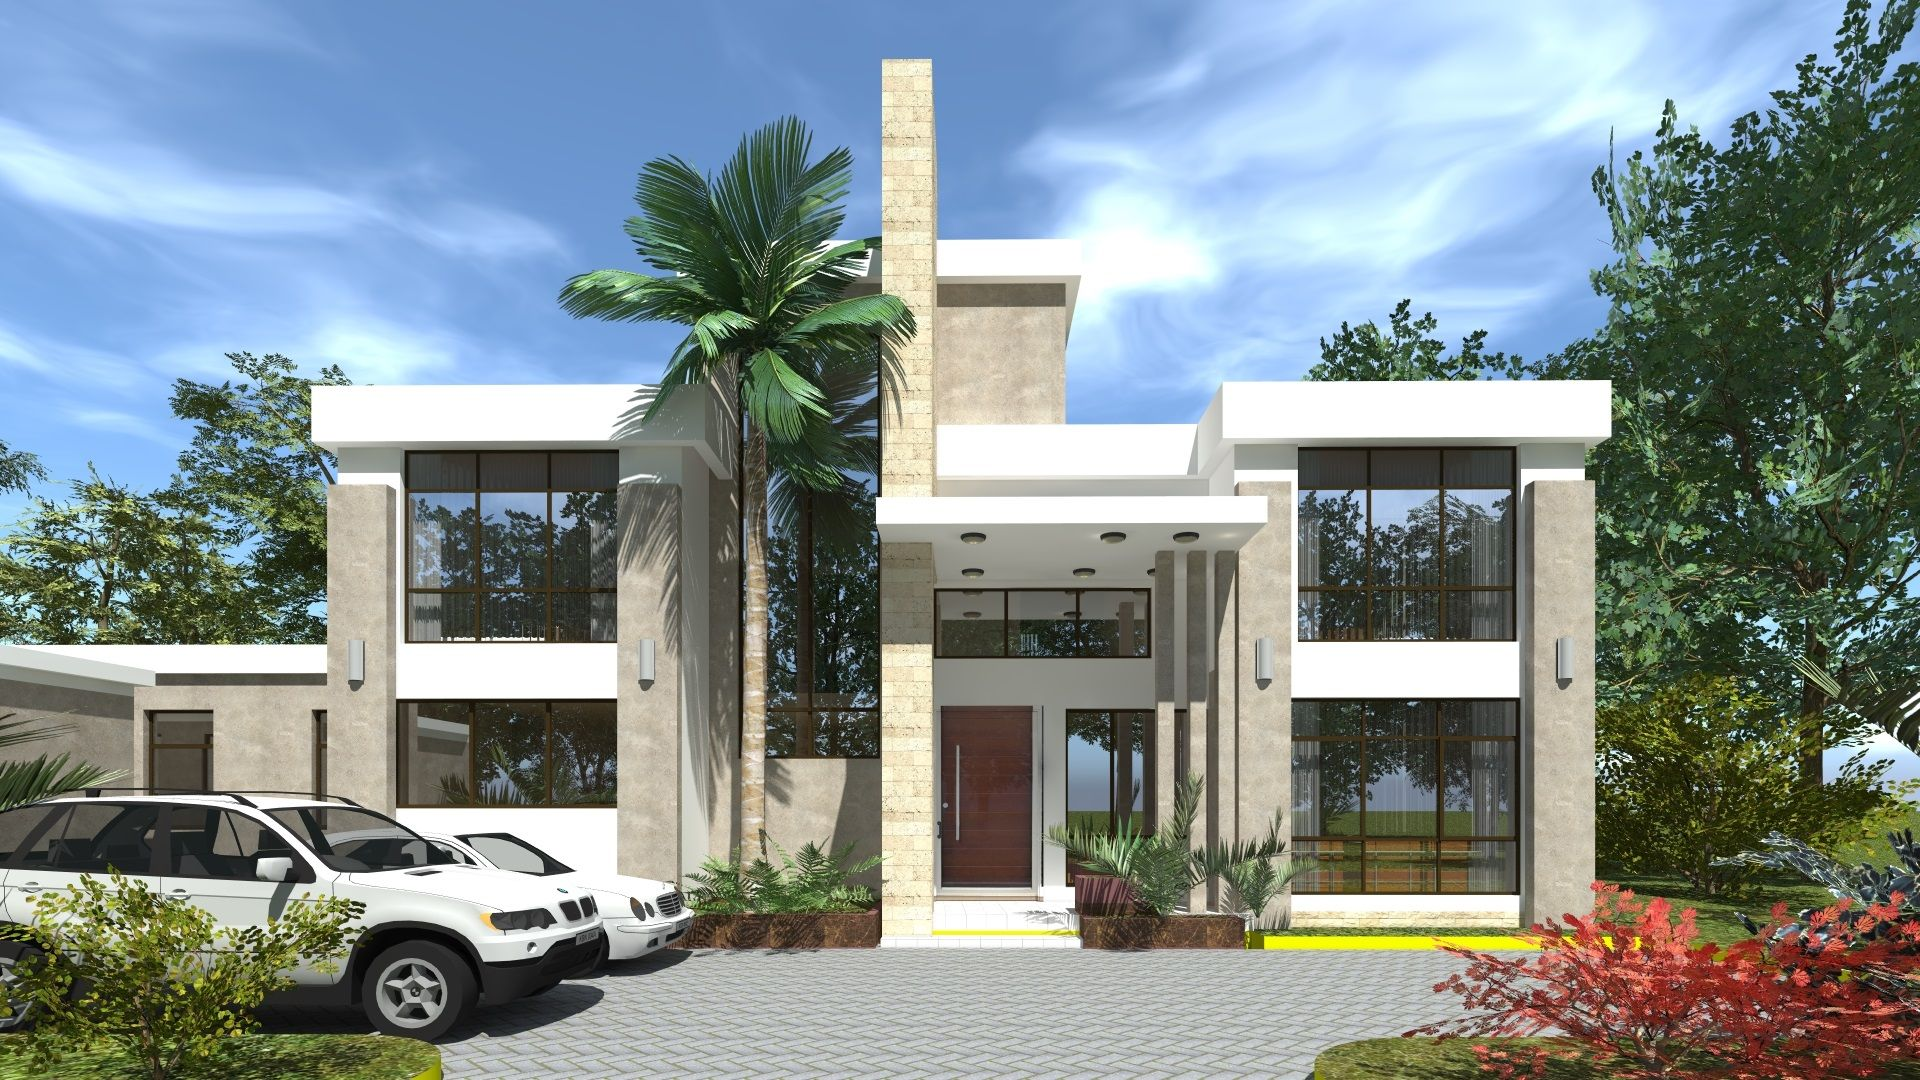 Proposed town houses hardy karen architecture beglinwoods residentialhouses moderndesigns townhouses nairobi kenya